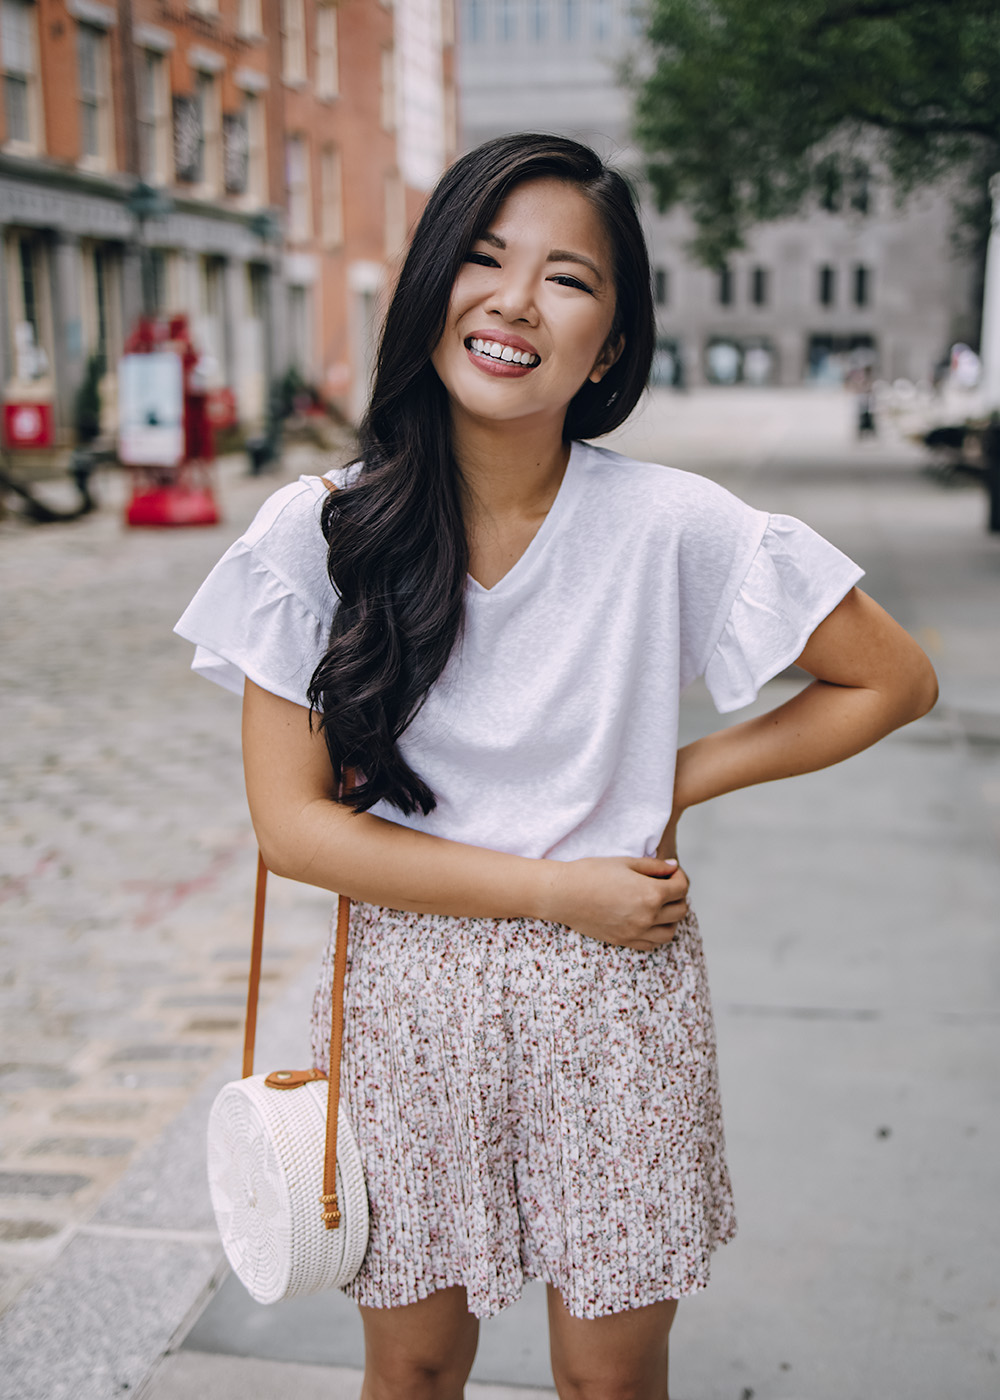 Casual Summer Outfit Ideas for Women: White Ruffle T-Shirt and Floral Shorts